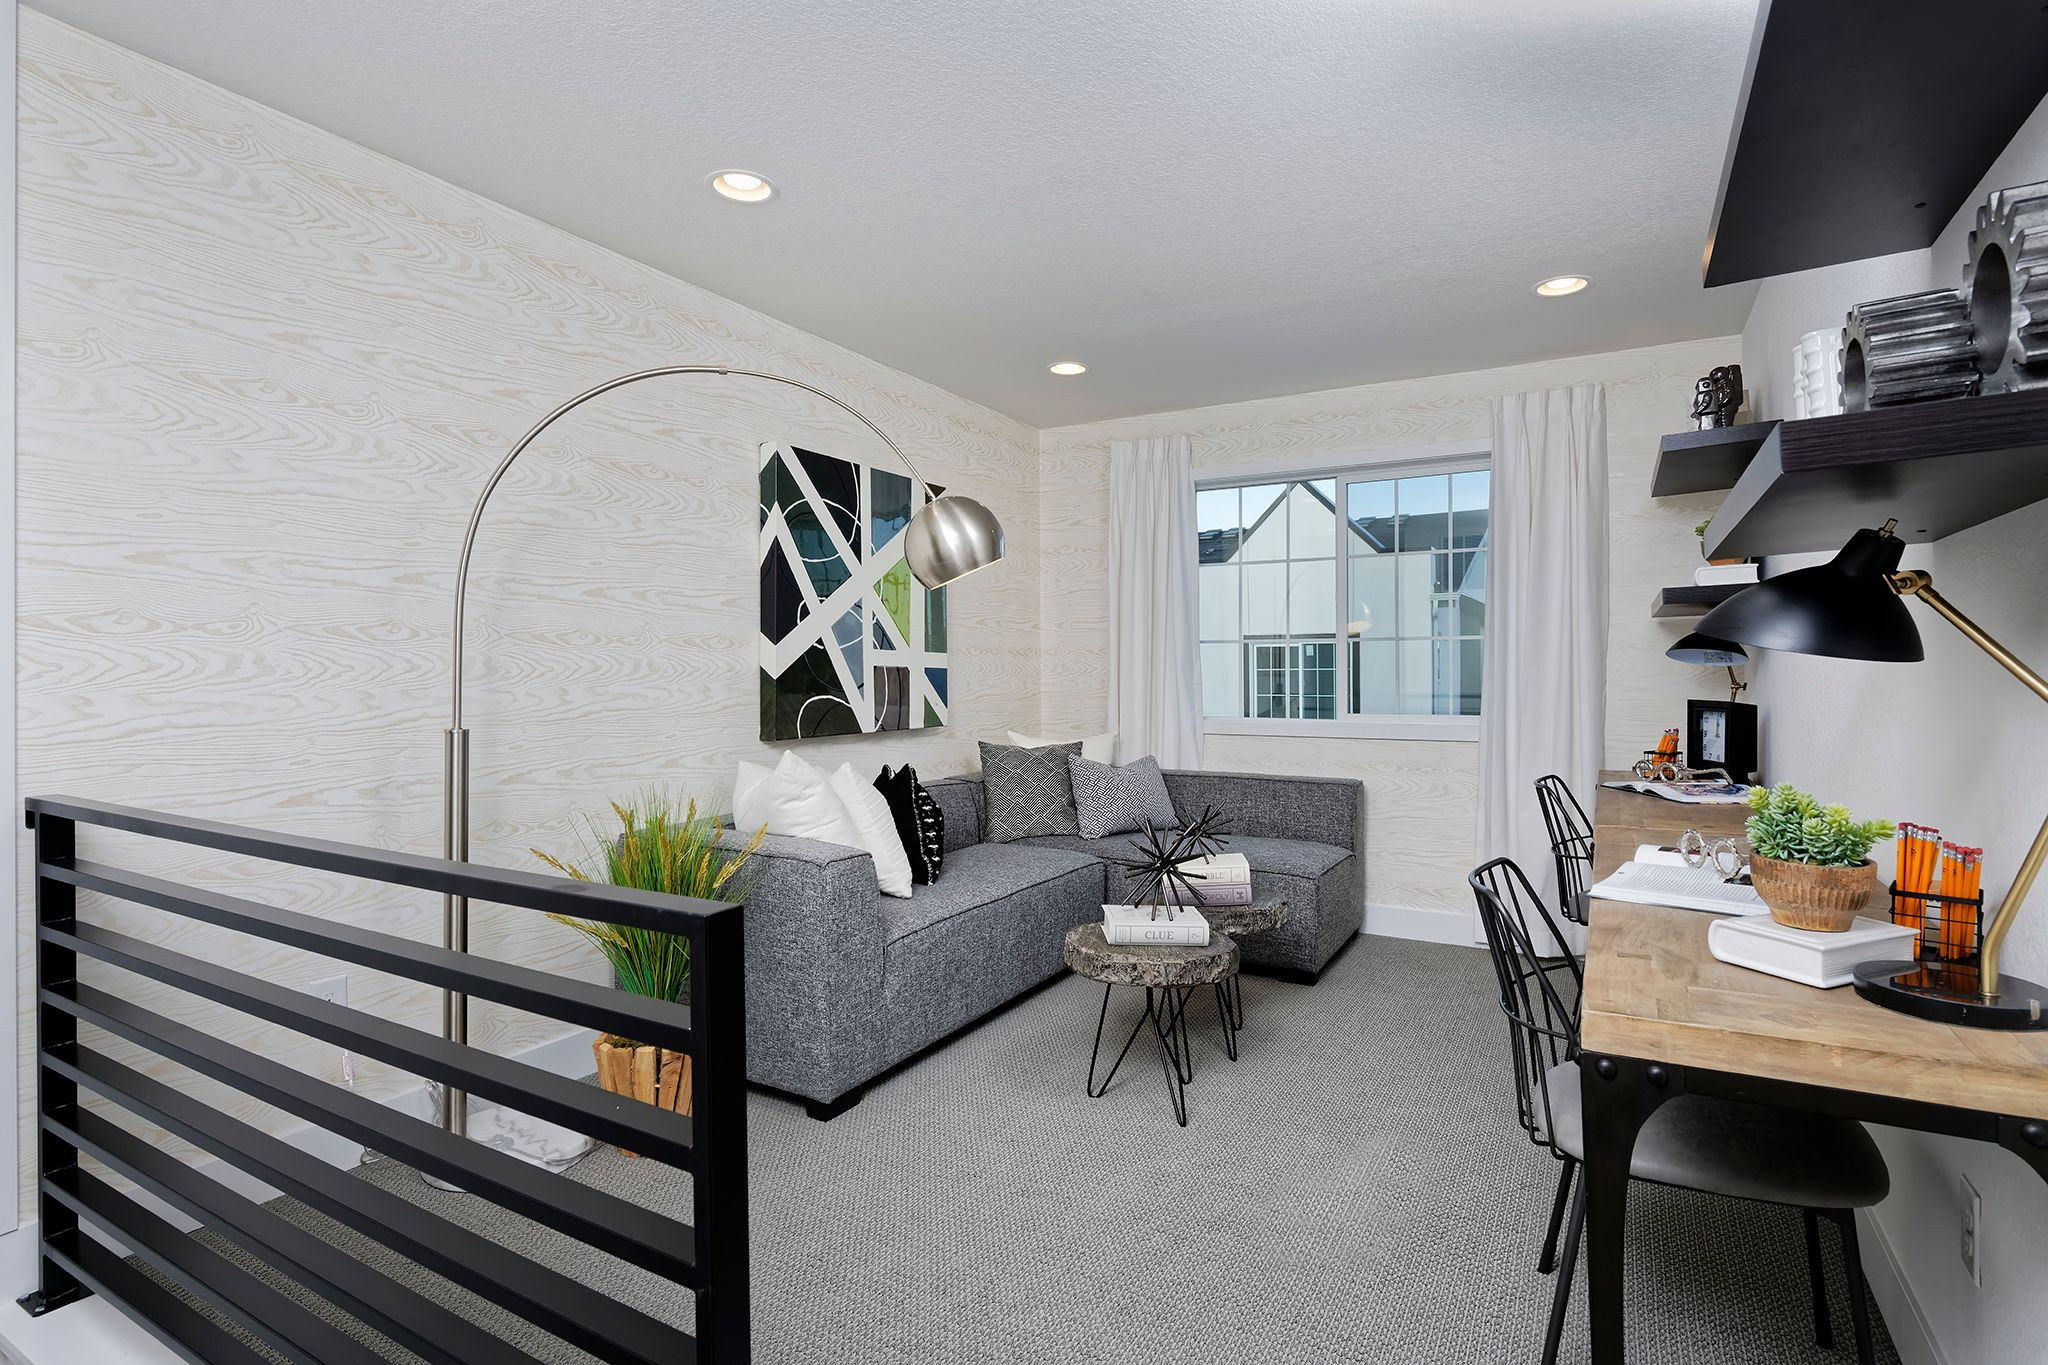 Living Area featured in the Marquee By Thrive Home Builders in Denver, CO